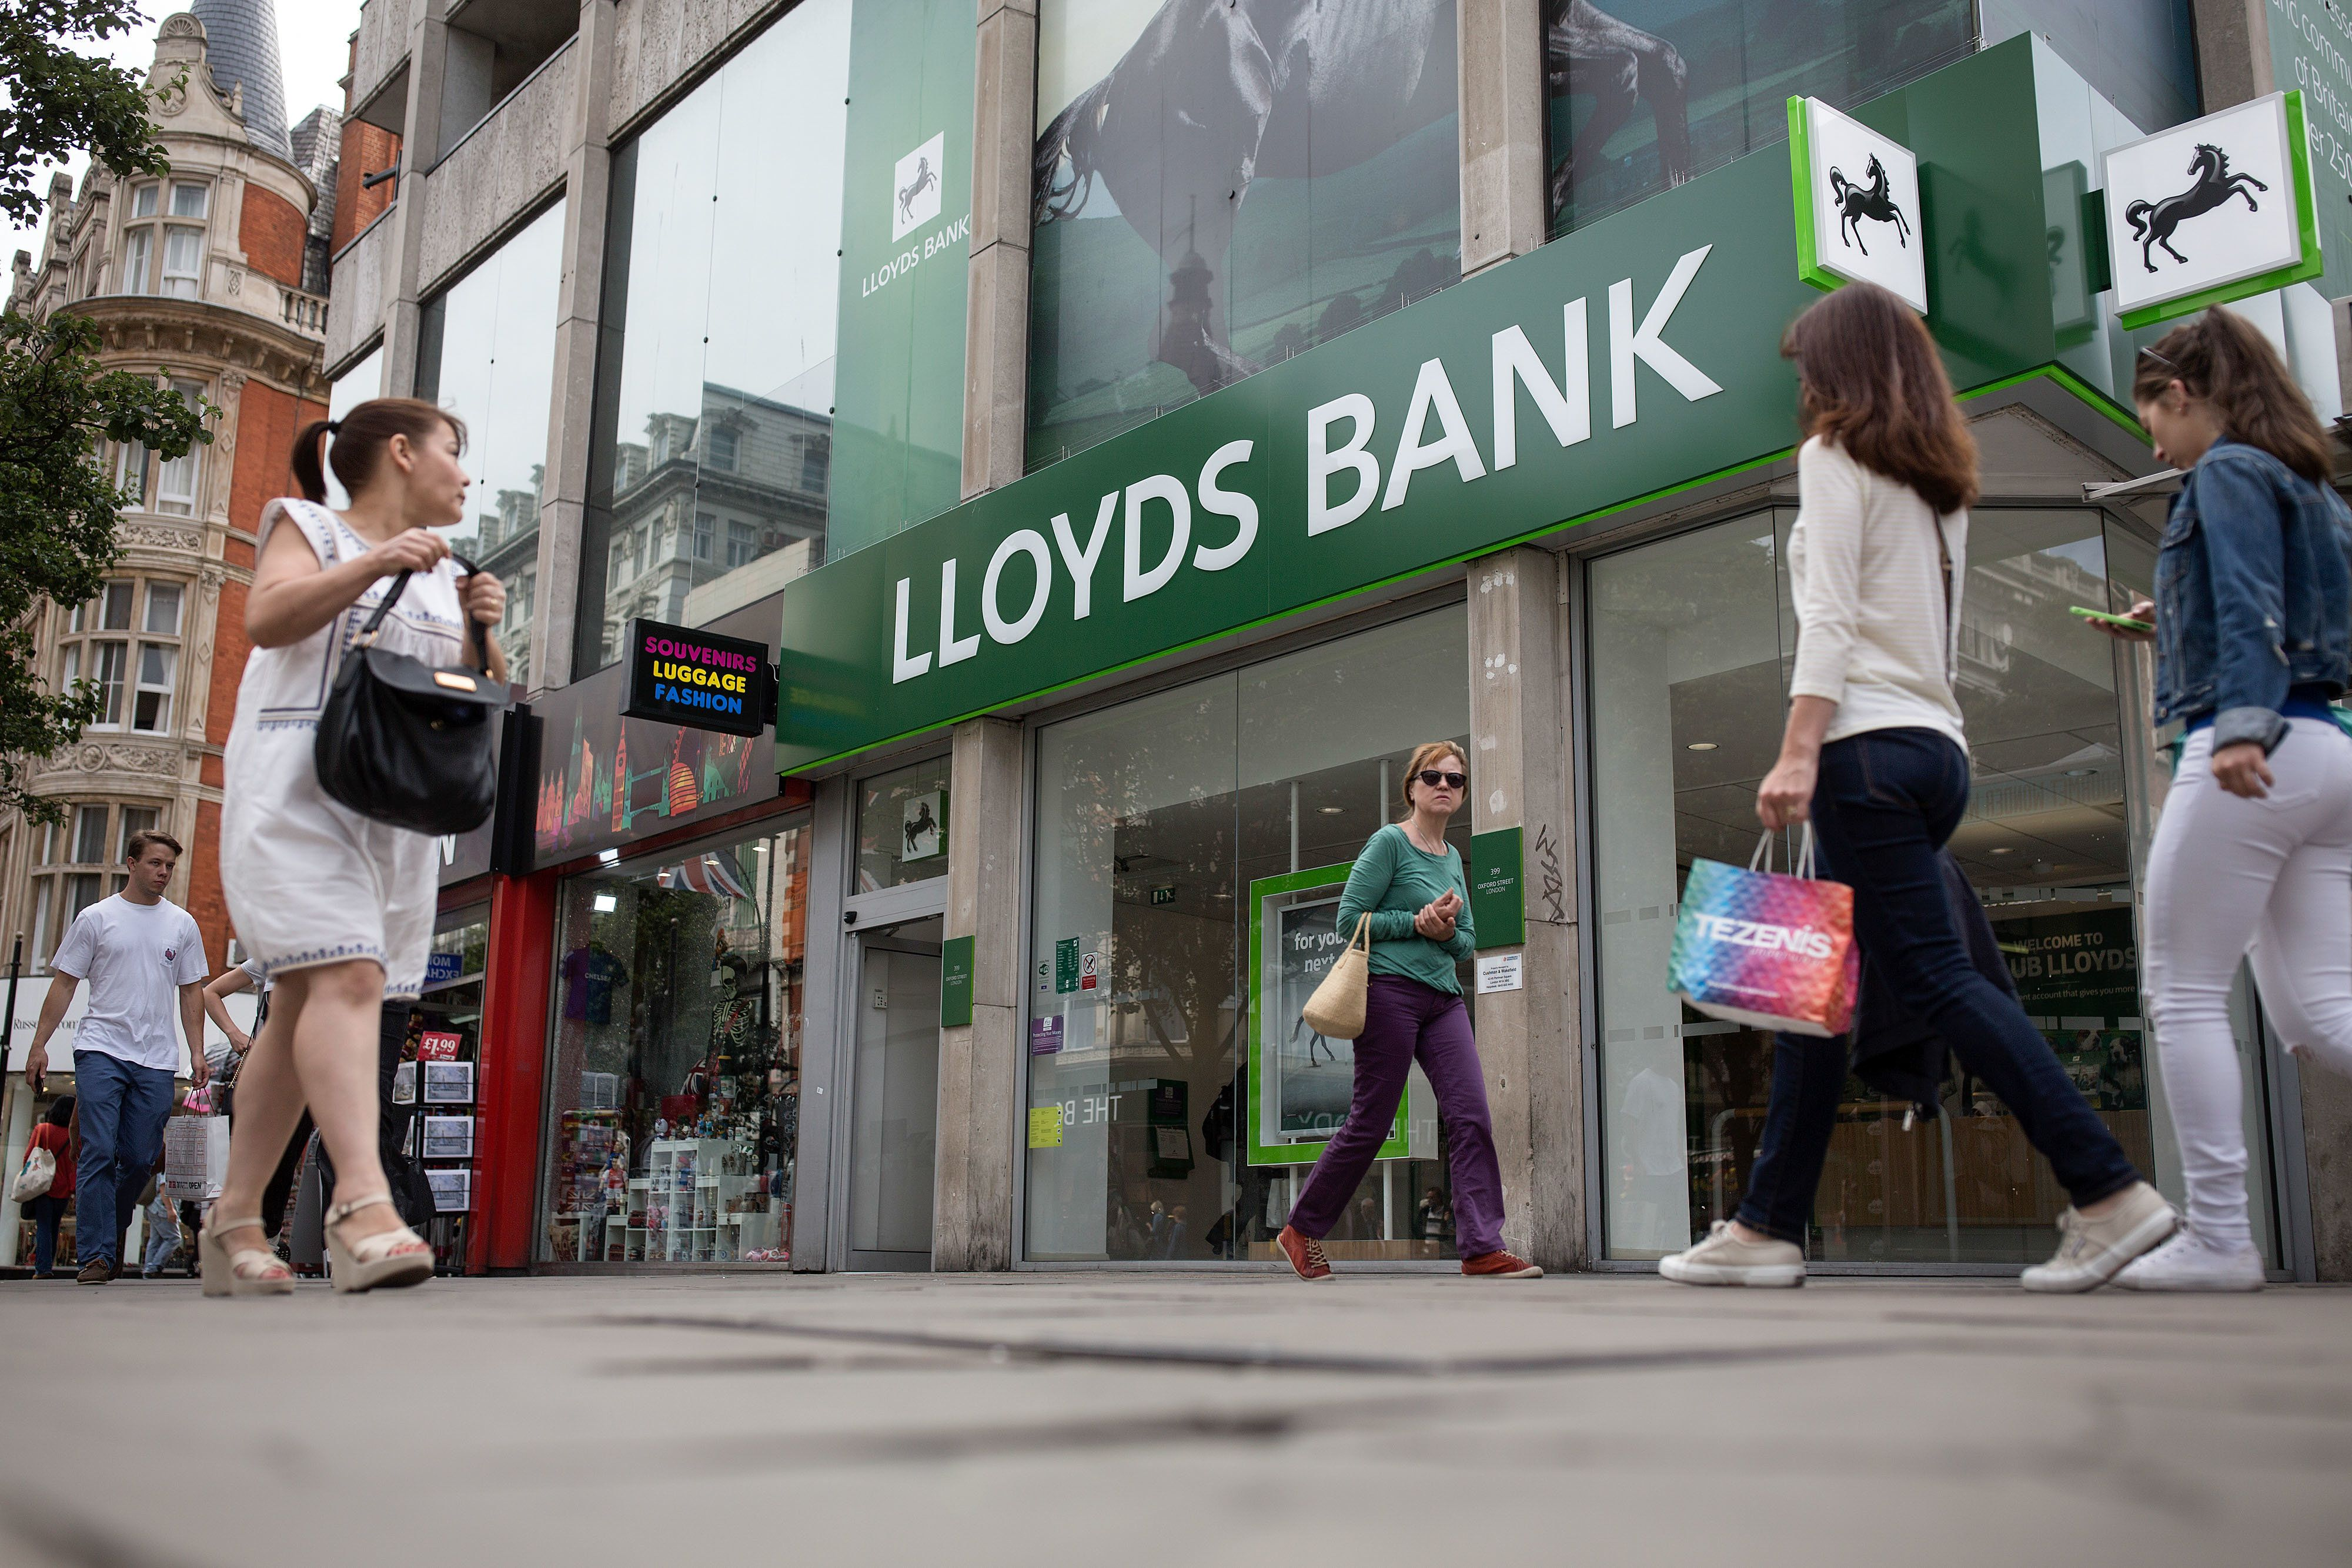 Pedestrians pass a Lloyds Bank branch, a unit of Lloyds Banking Group Plc, on Oxford Street in London, U.K., on Thursday, July 28, 2016. Lloyds Banking Group Plc will cut a further 3,000 jobs as it warned Britain's vote to leave the European Union would hurt its ability to boost dividend payments. Photographer: Simon Dawson/Bloomberg via Getty Images